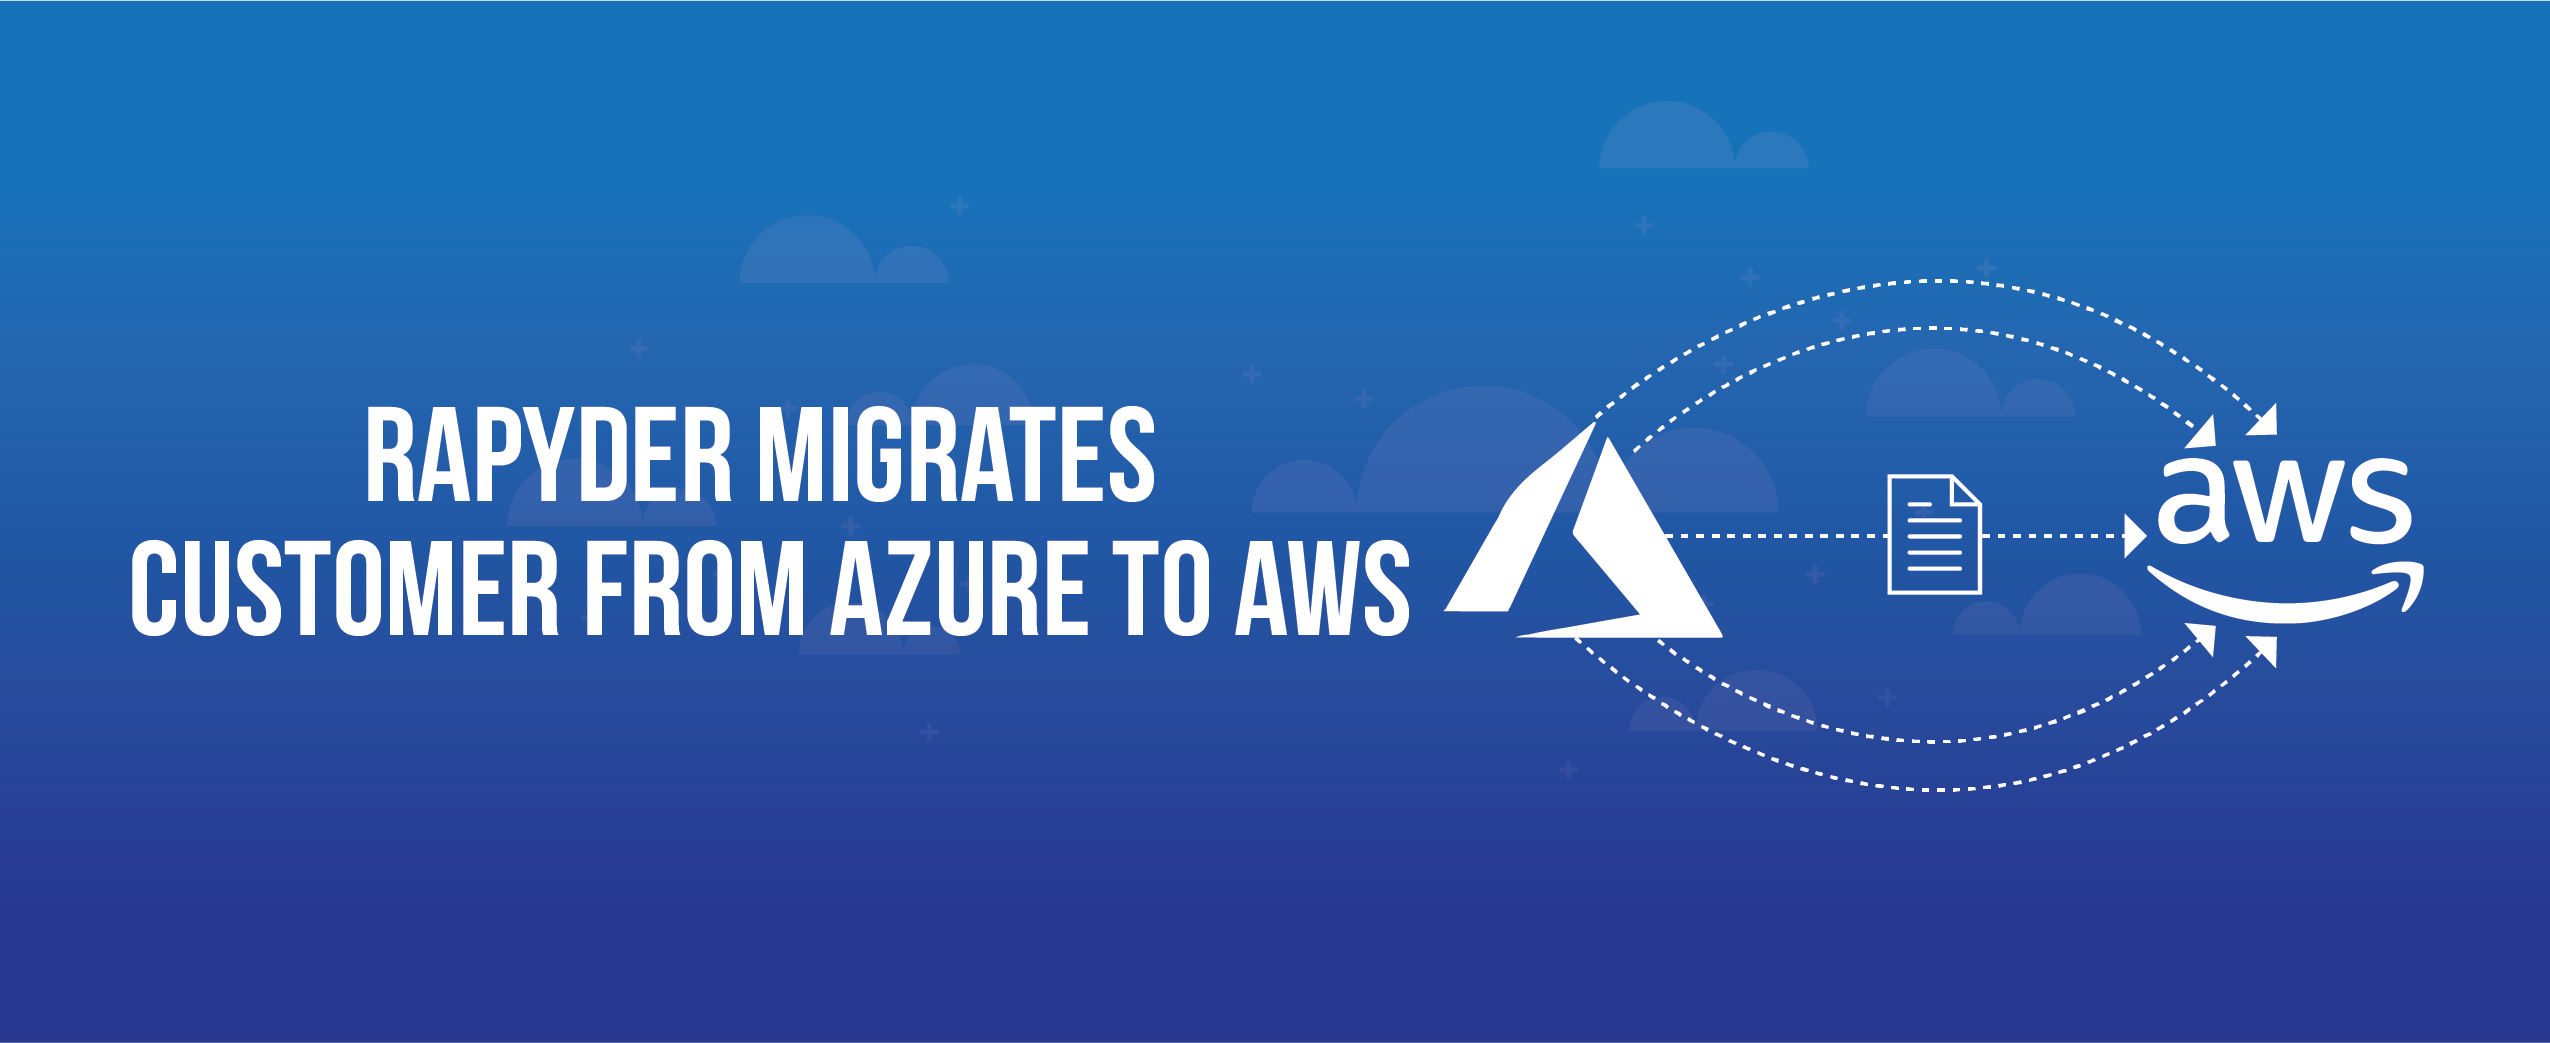 Customer Migration 04 - Customer Migrates from Azure to AWS